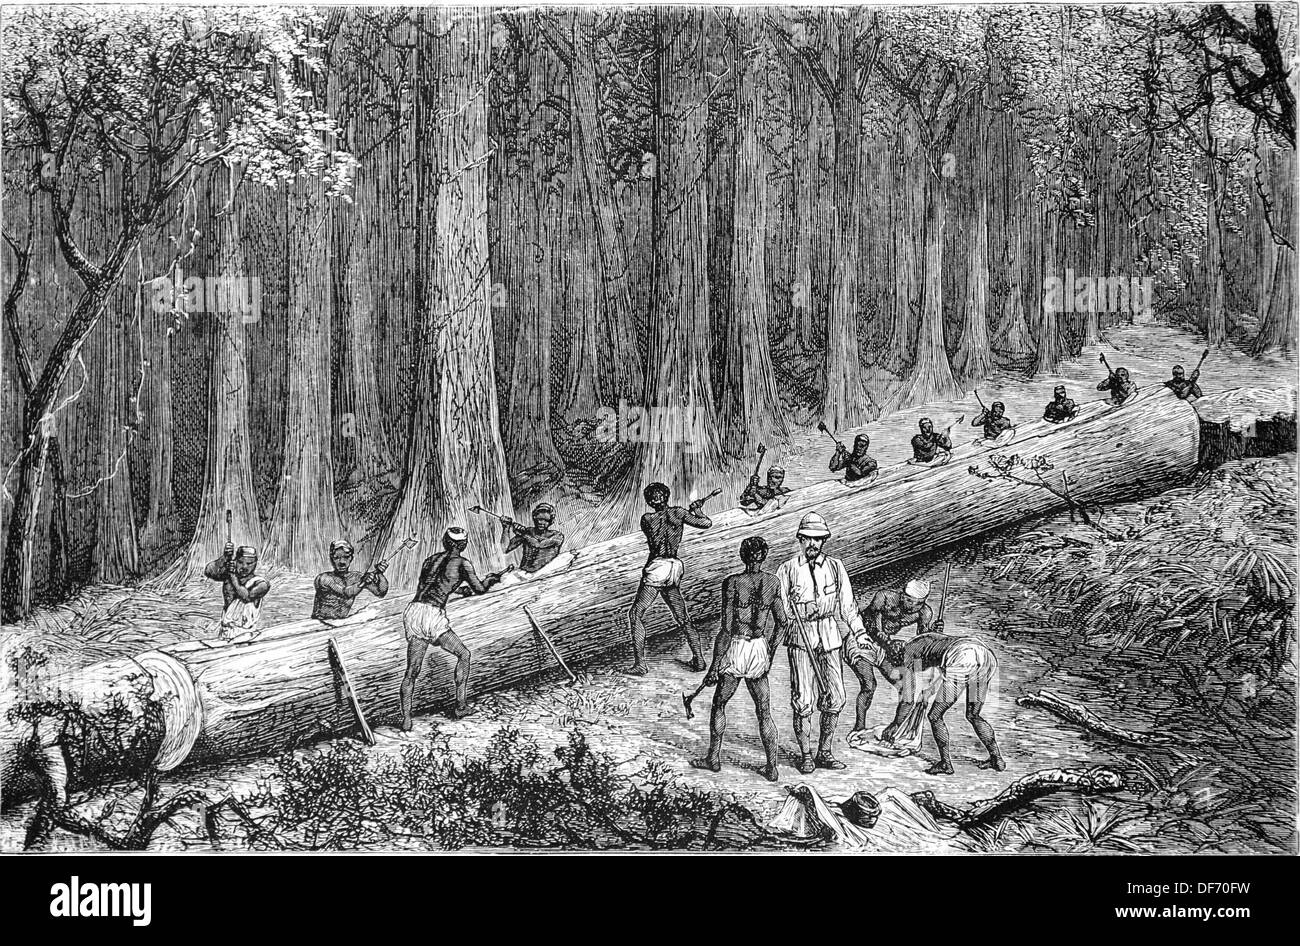 Africa. Stanley Expedition. Cutting Out teh New 'Livingstone Canoe'. Engraving by Com. 'La Ilustracion Nacional', 1871. - Stock Image